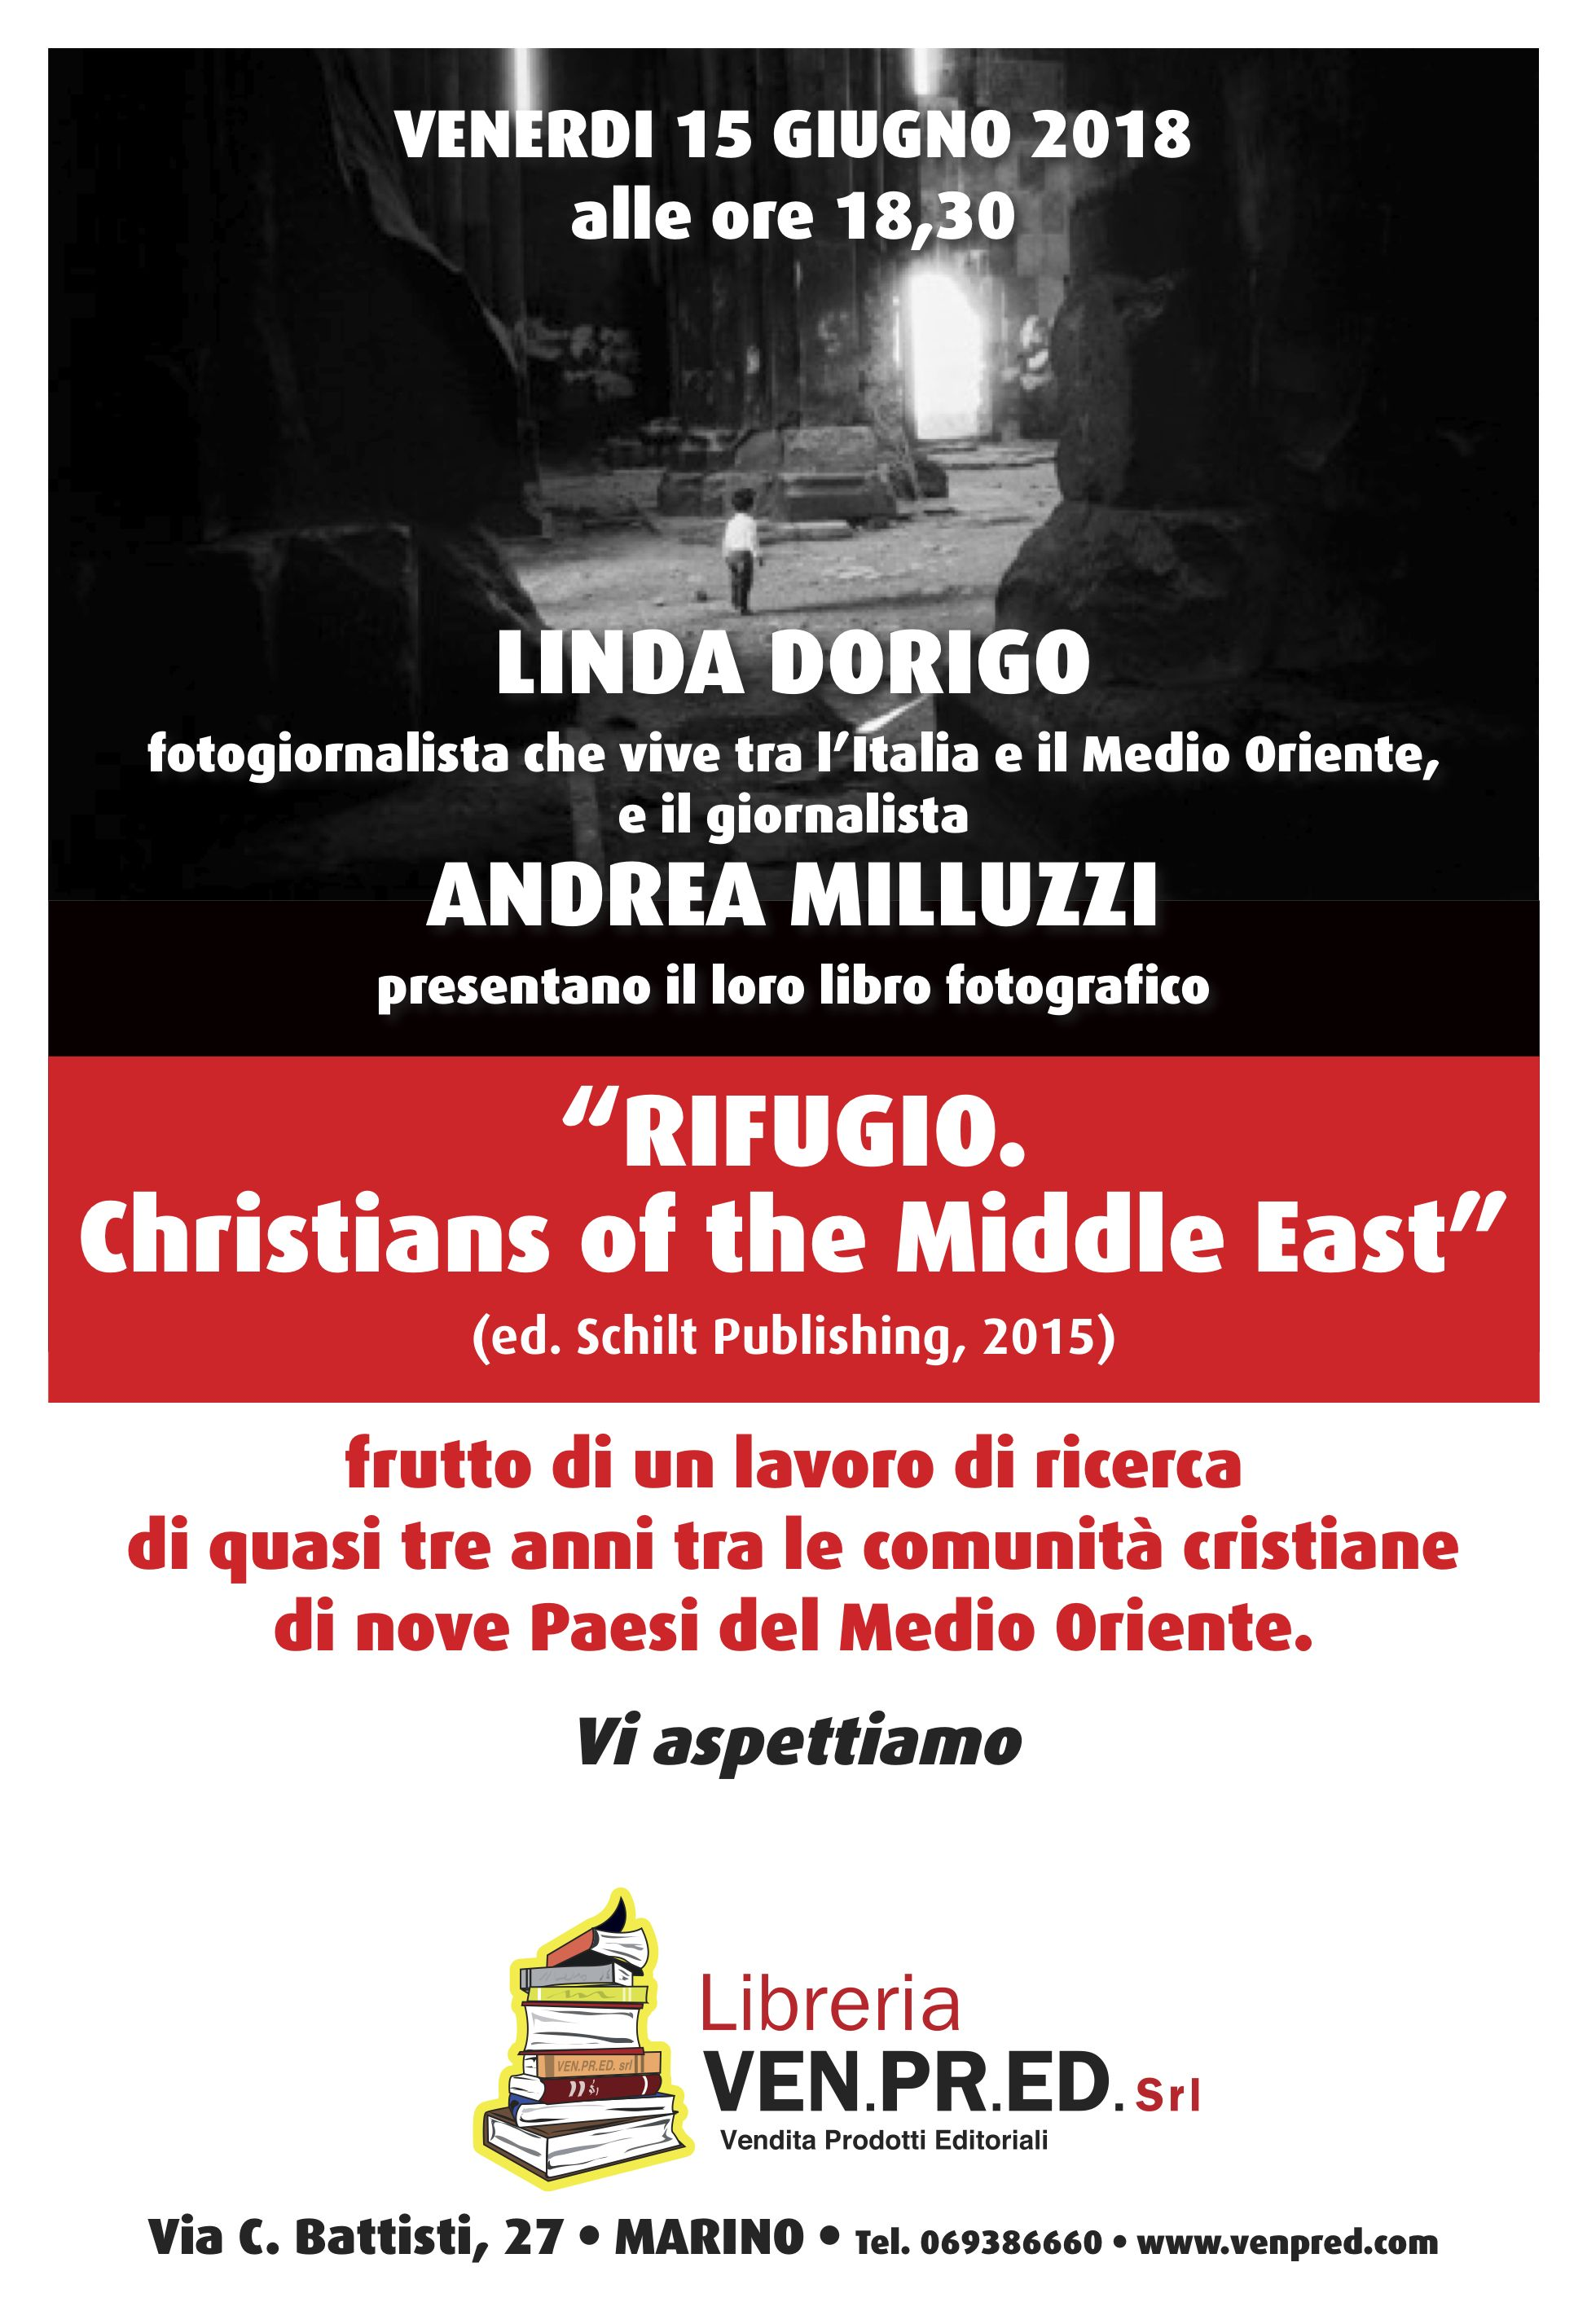 RIFUGIO Christians of the Middle East